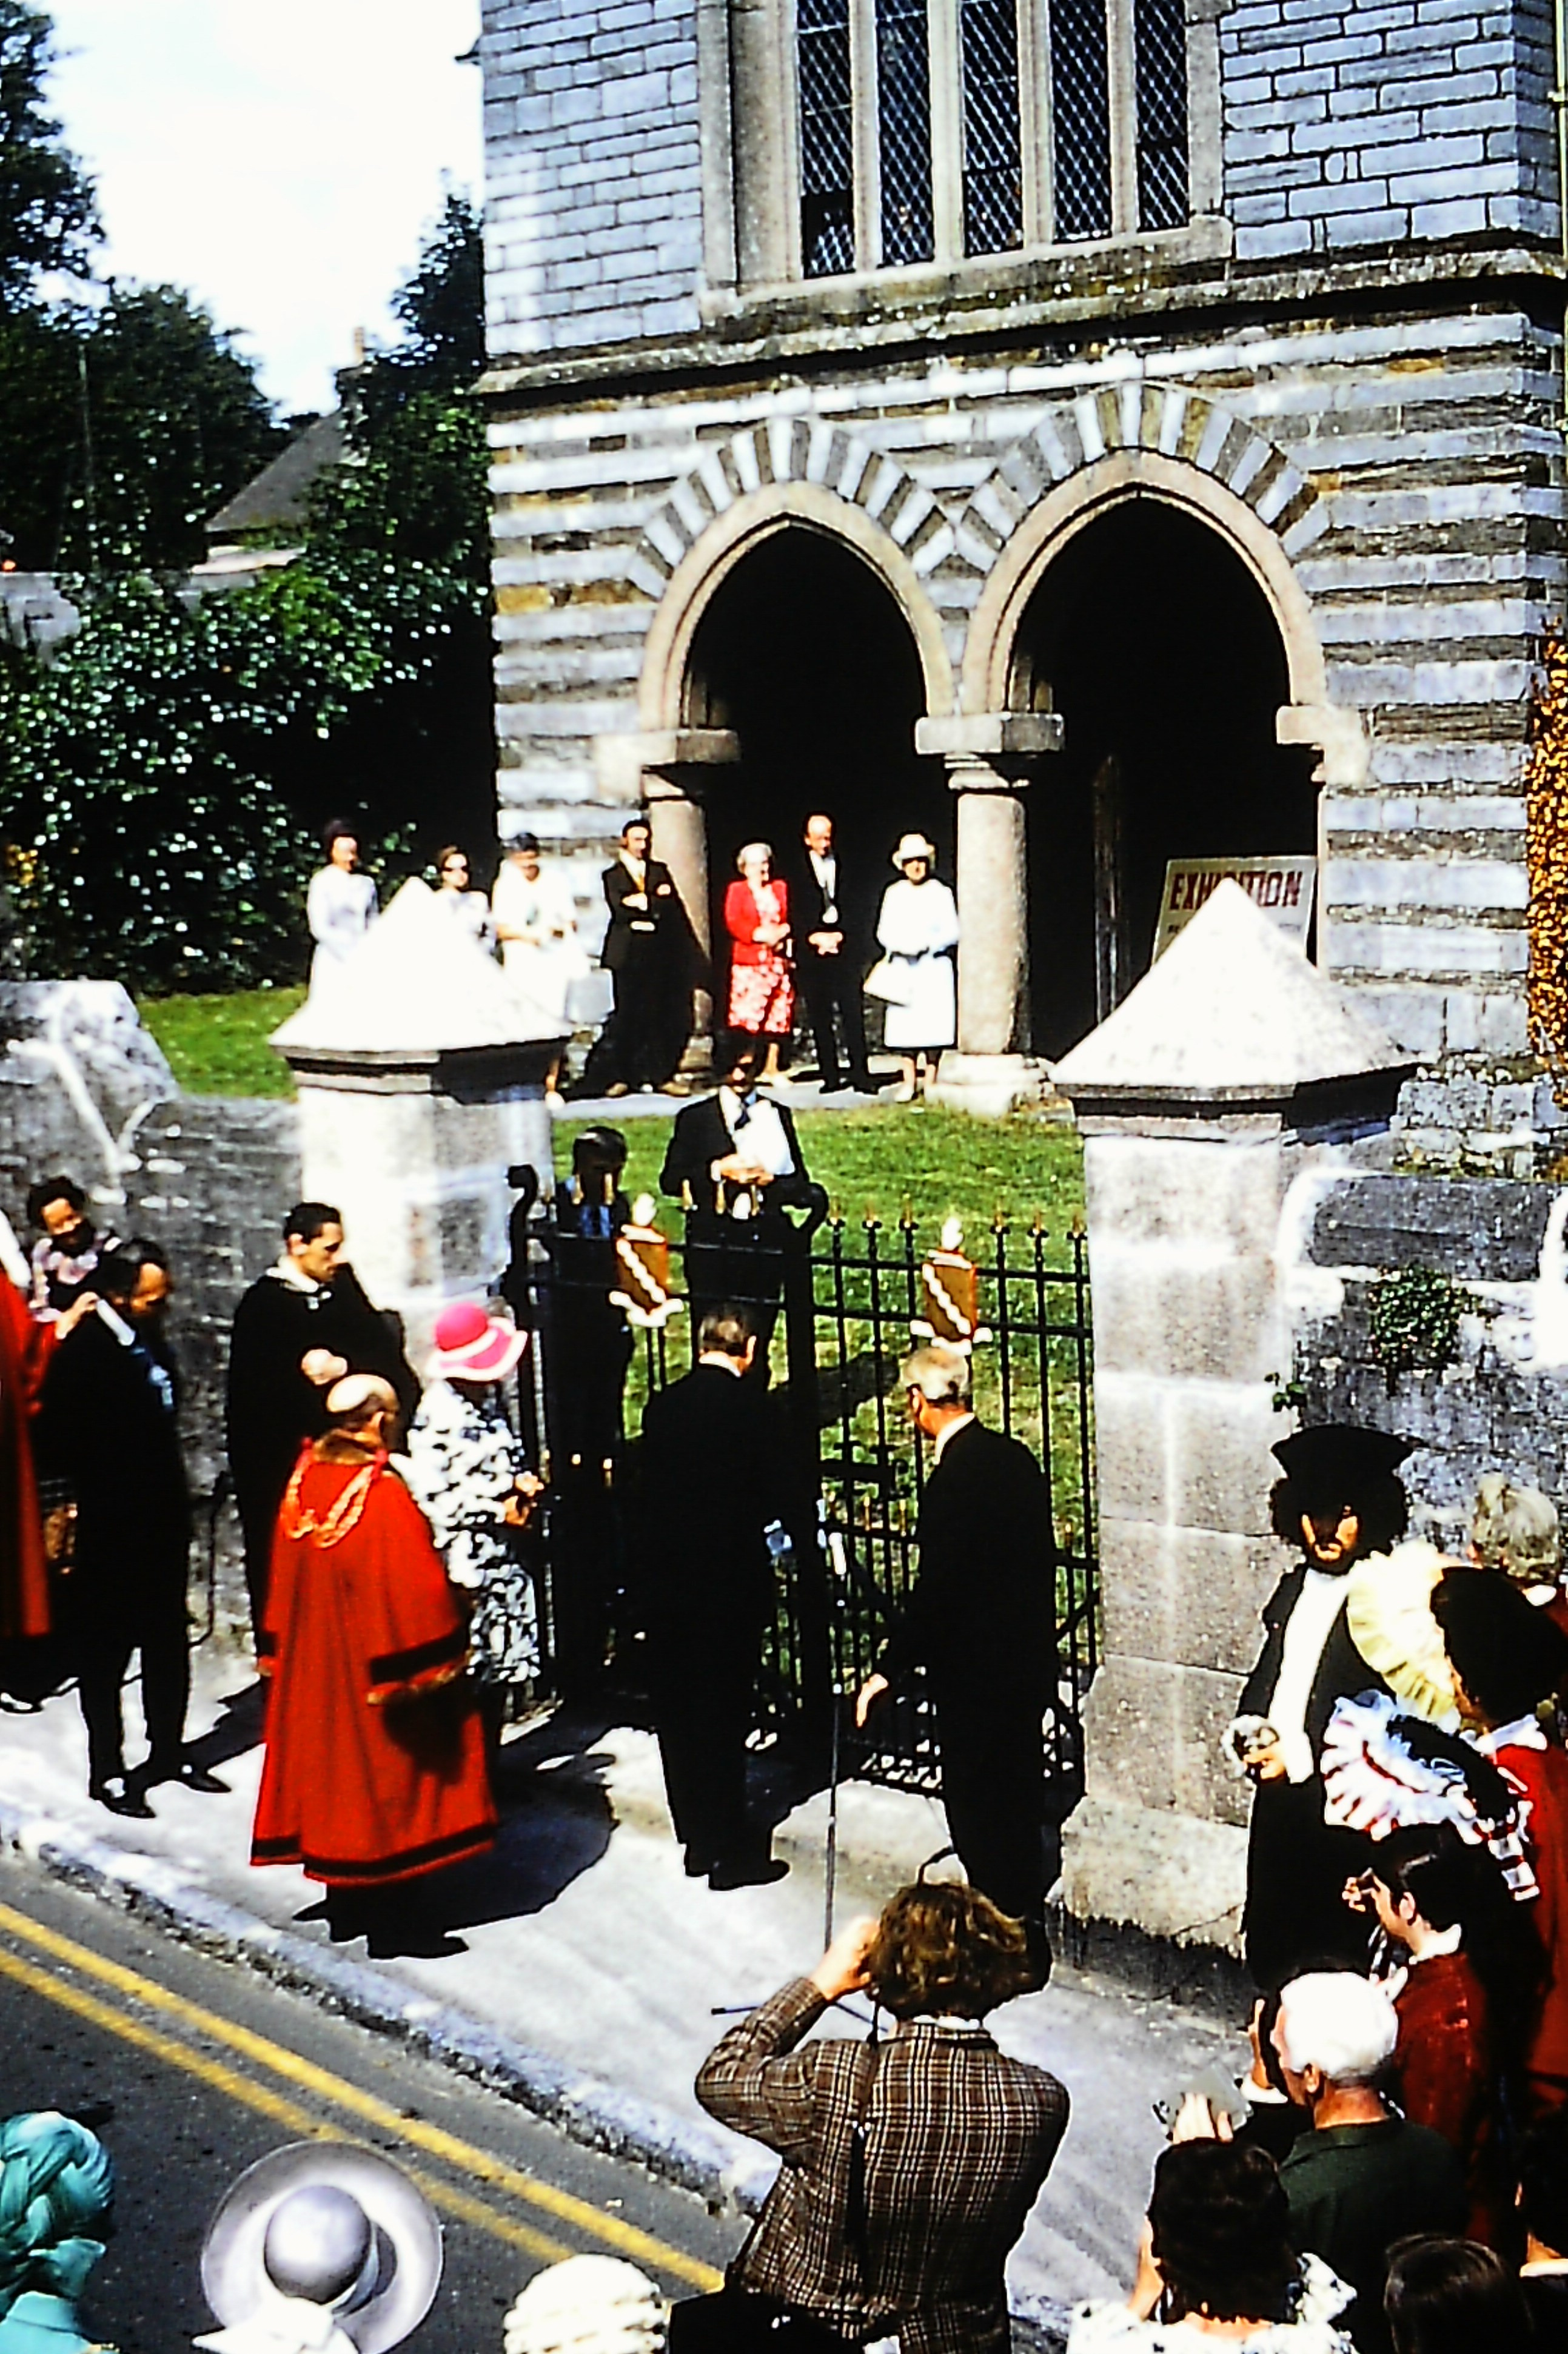 Opening of gates to Old Grammar School -1973